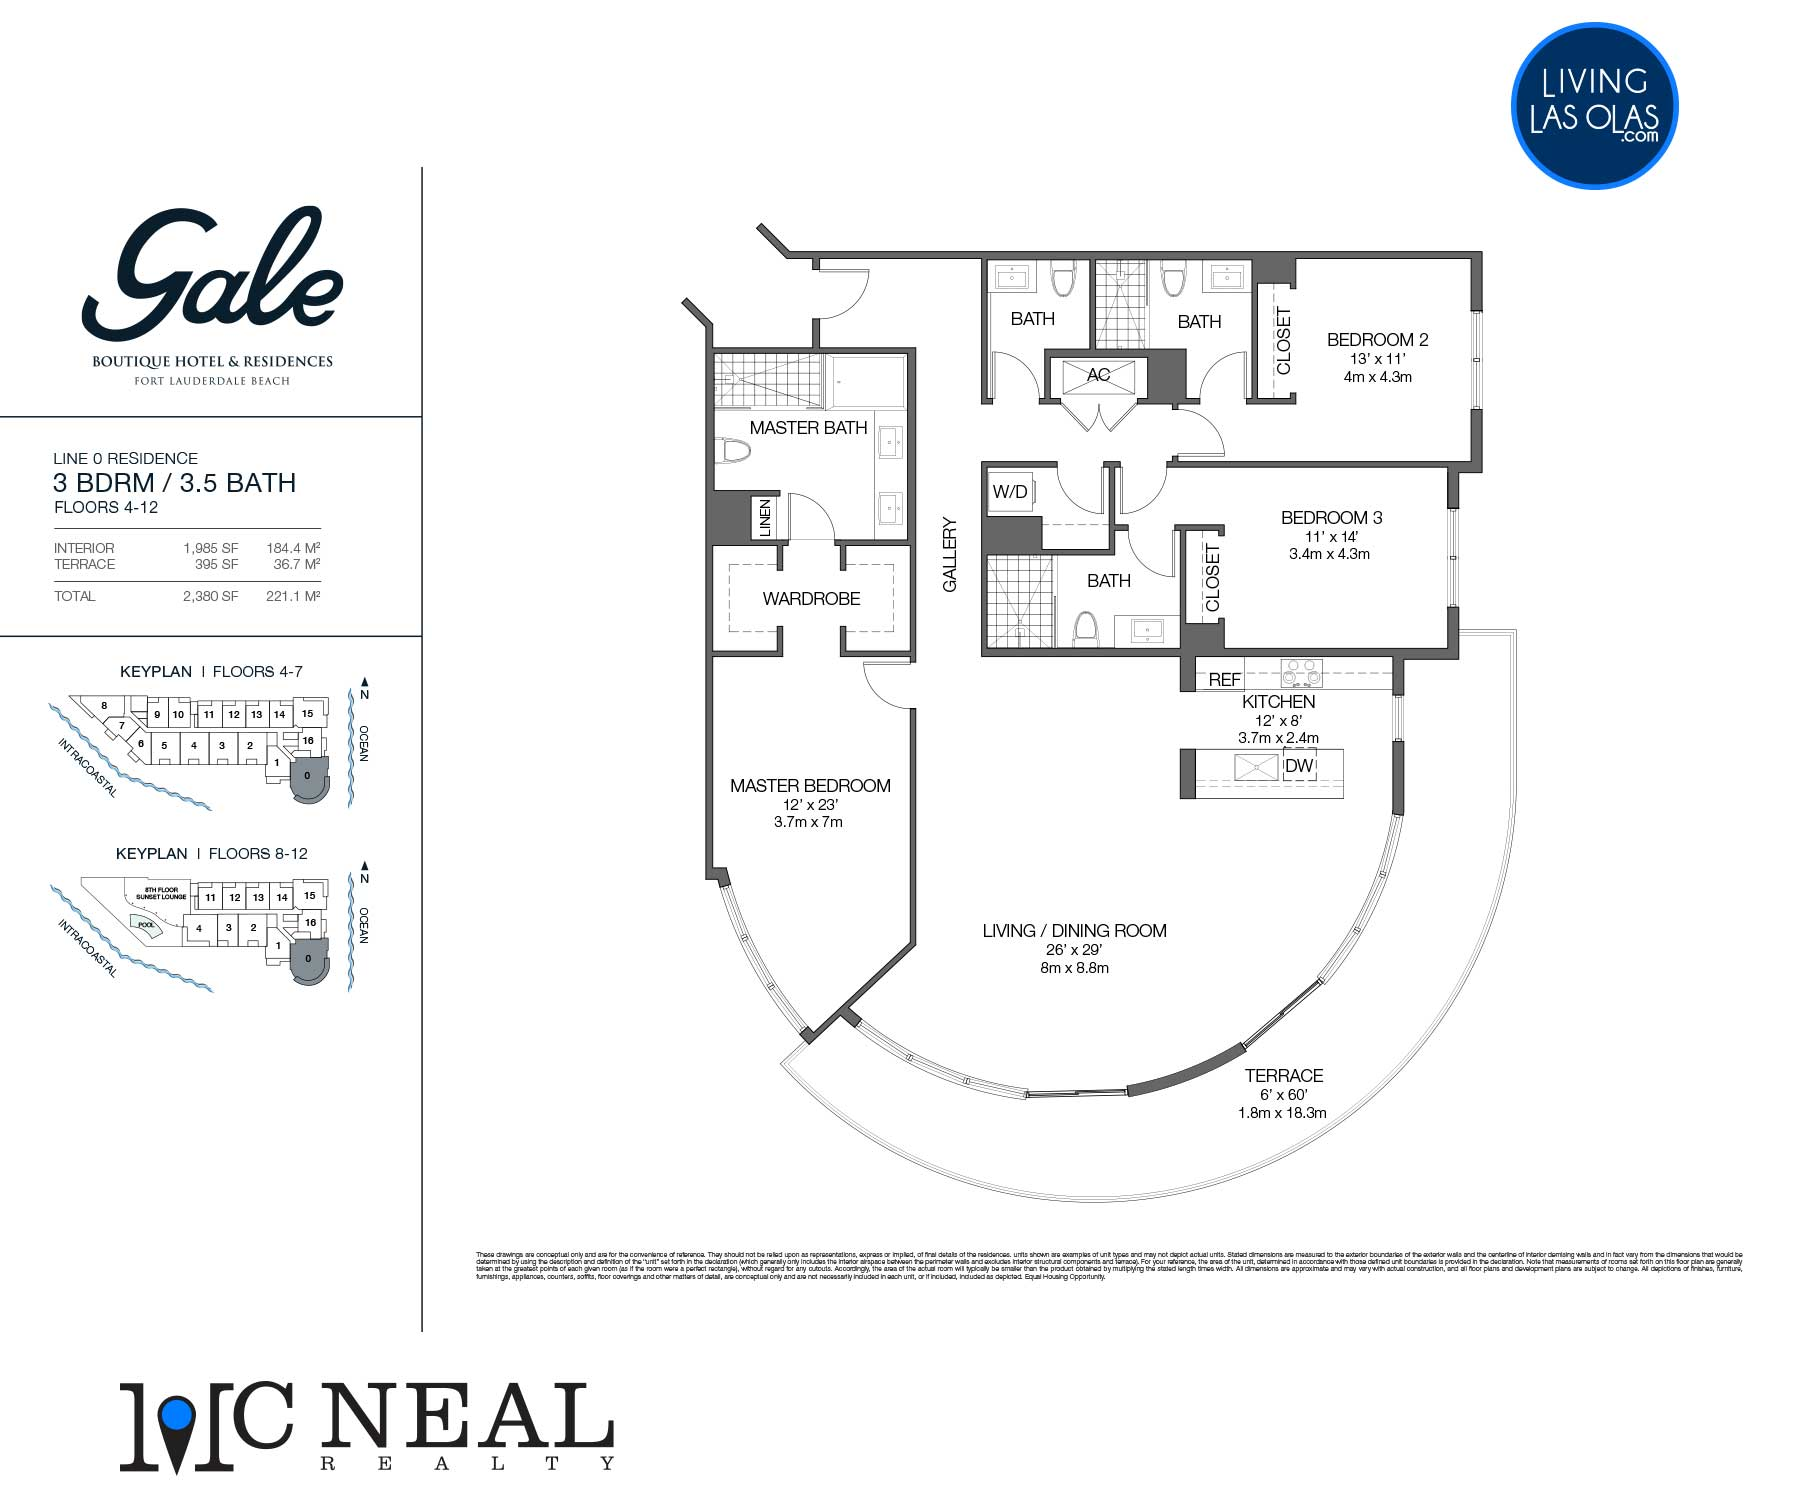 Tiffany House Condos Floor Plans Line 0